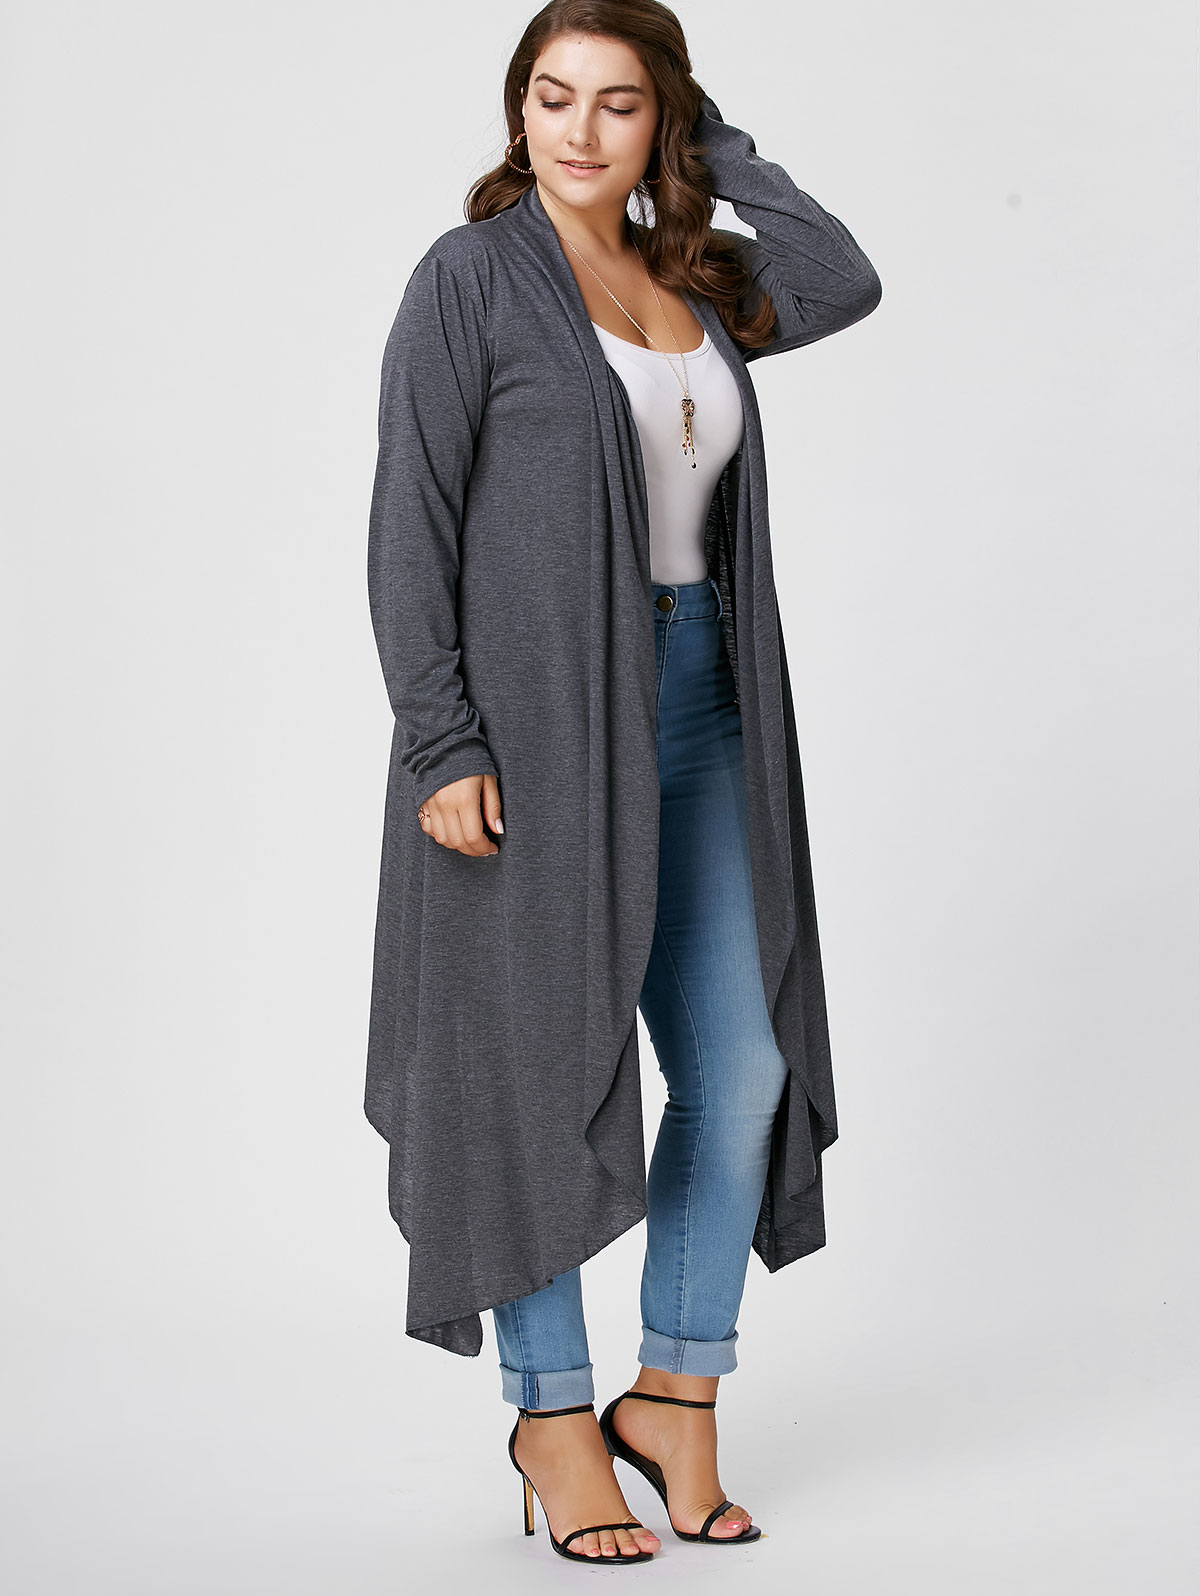 Gamiss Loose Long Asymmetrical Cardigan Coat Women Autumn Long ...